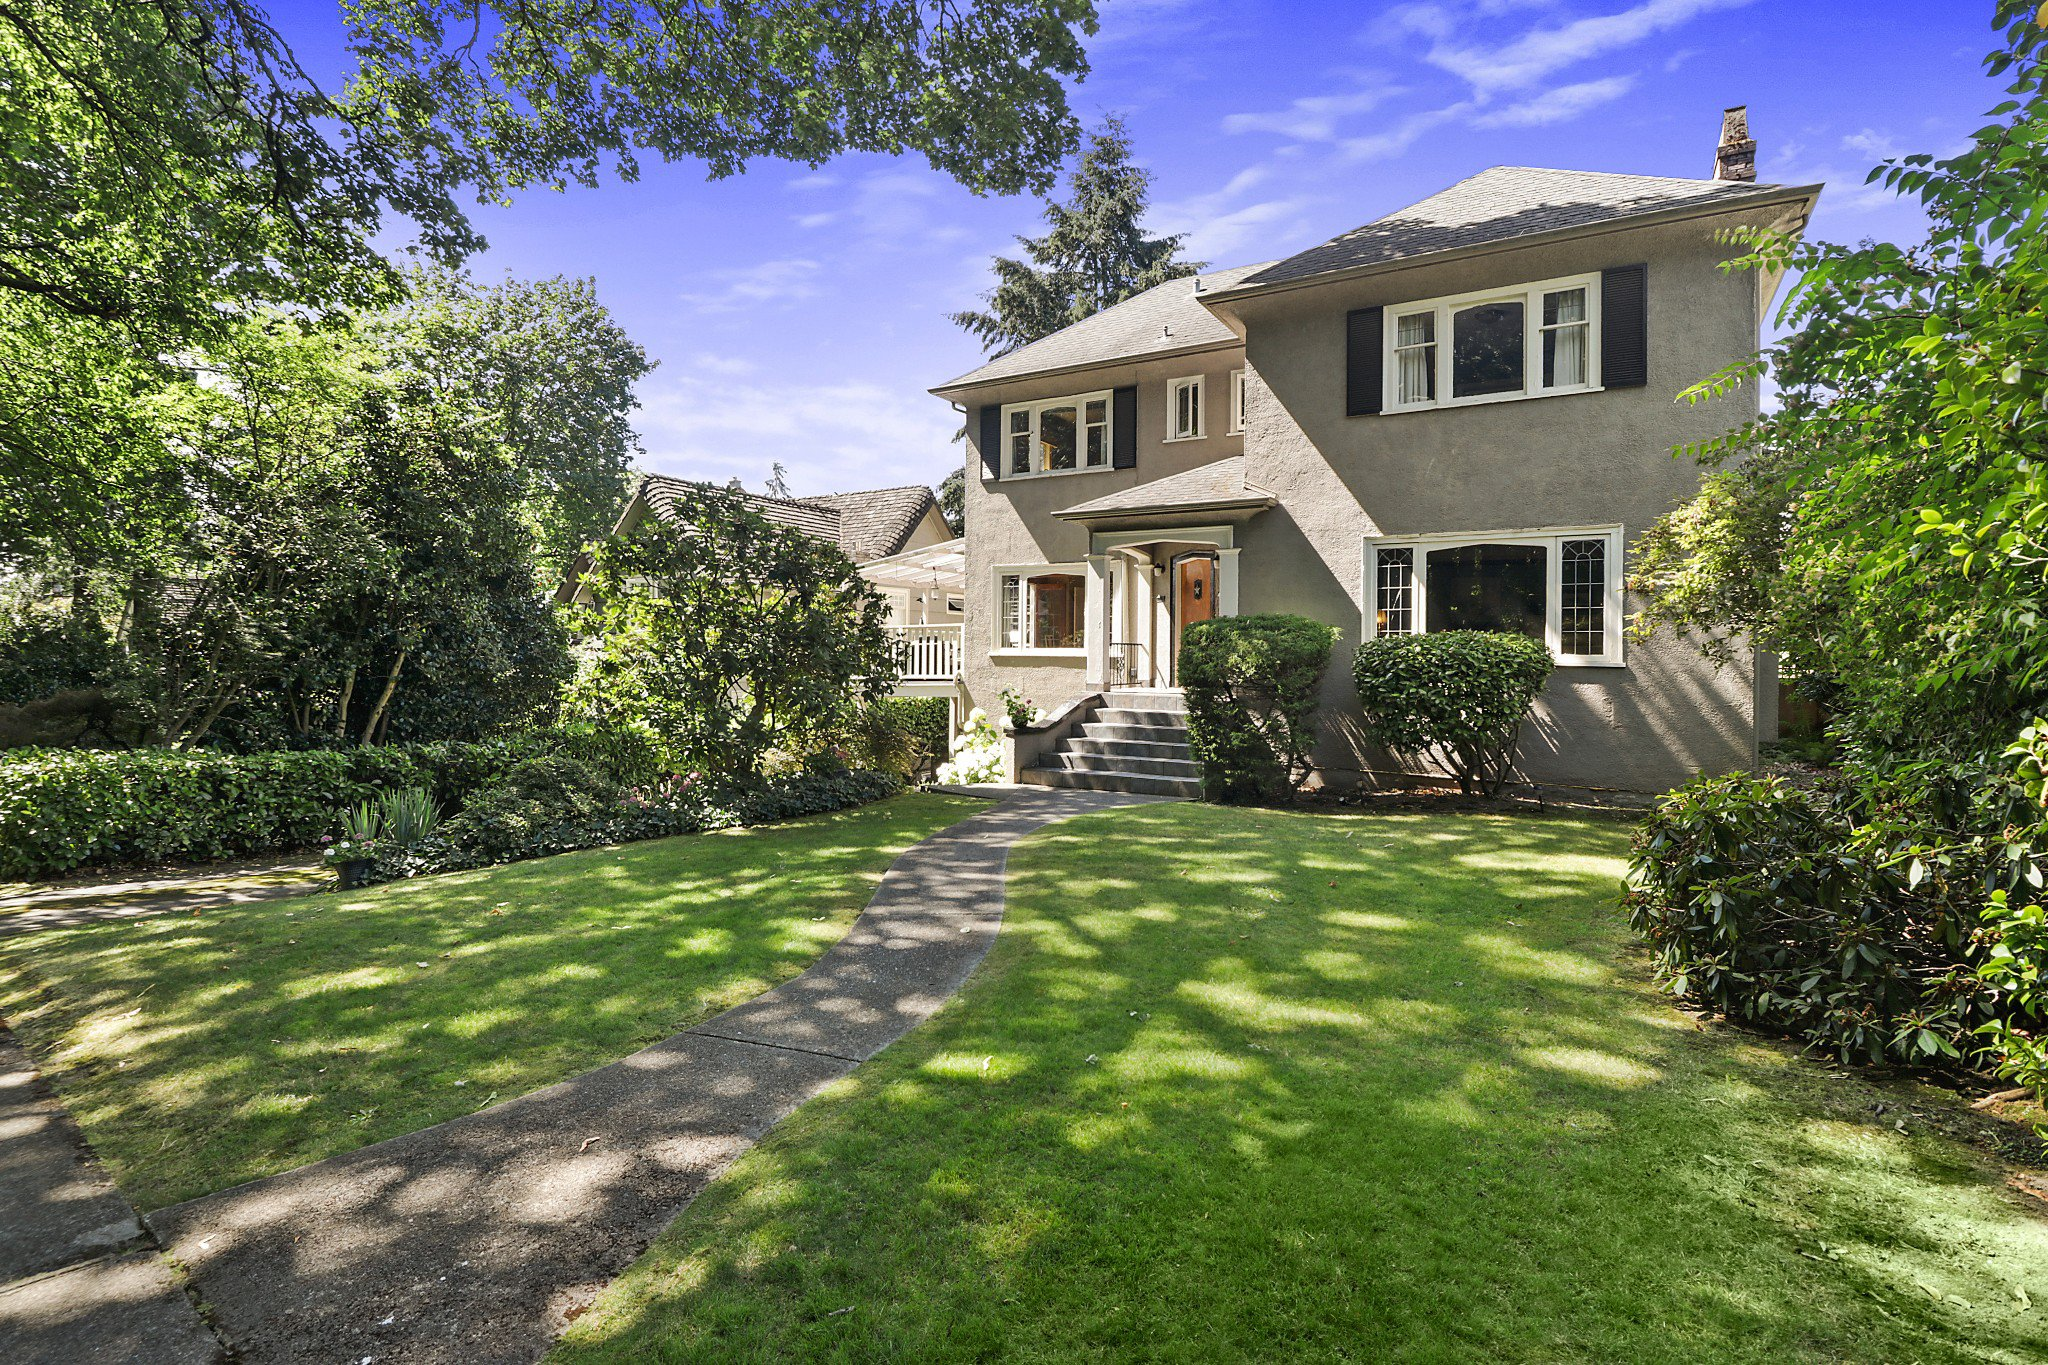 Main Photo: 4123 Cypress Street in Vancouver: Shaughnessy House for sale (Vancouver West)  : MLS®# R2485122